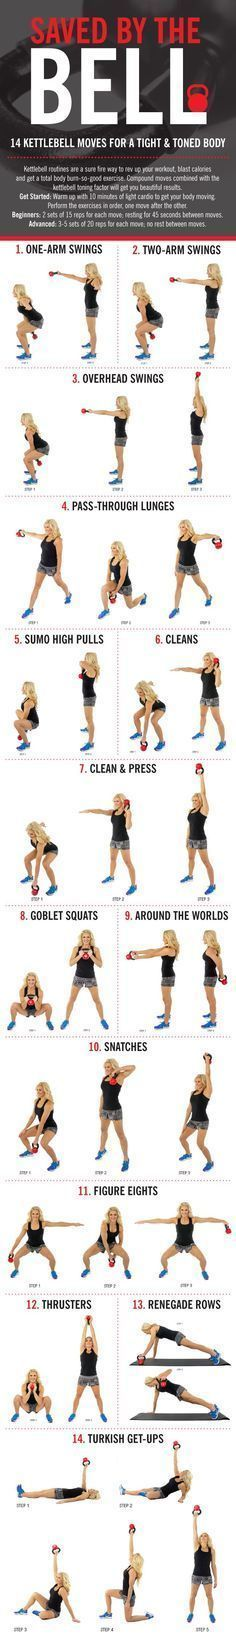 This classic Kettlebell will kick your butt (in the best way possible)